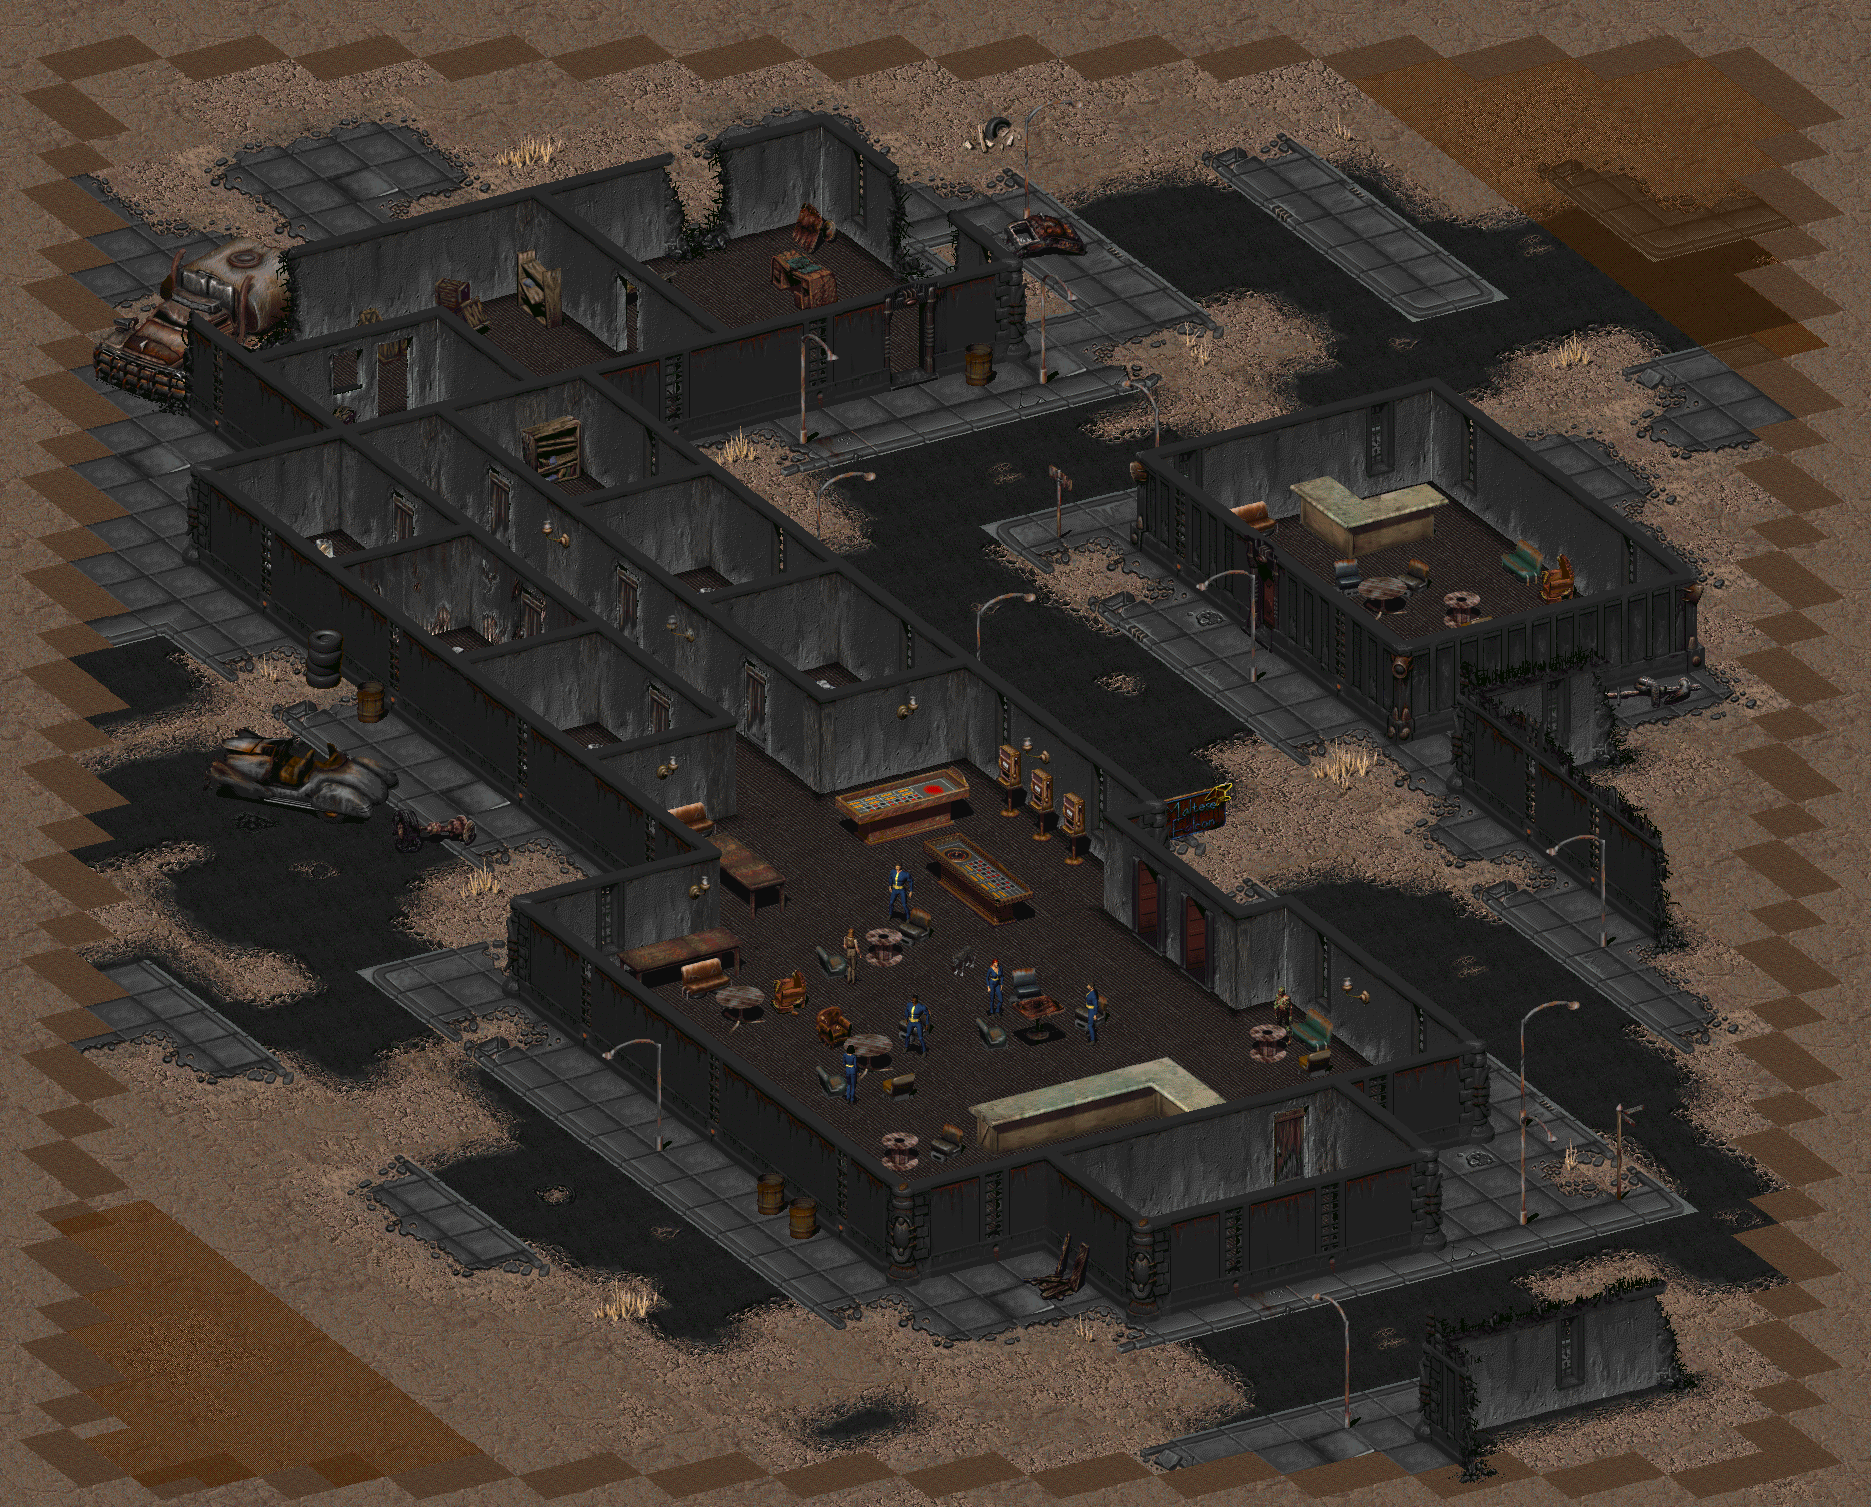 Fallout 2 special encounters | Fallout Wiki | FANDOM powered by Wikia